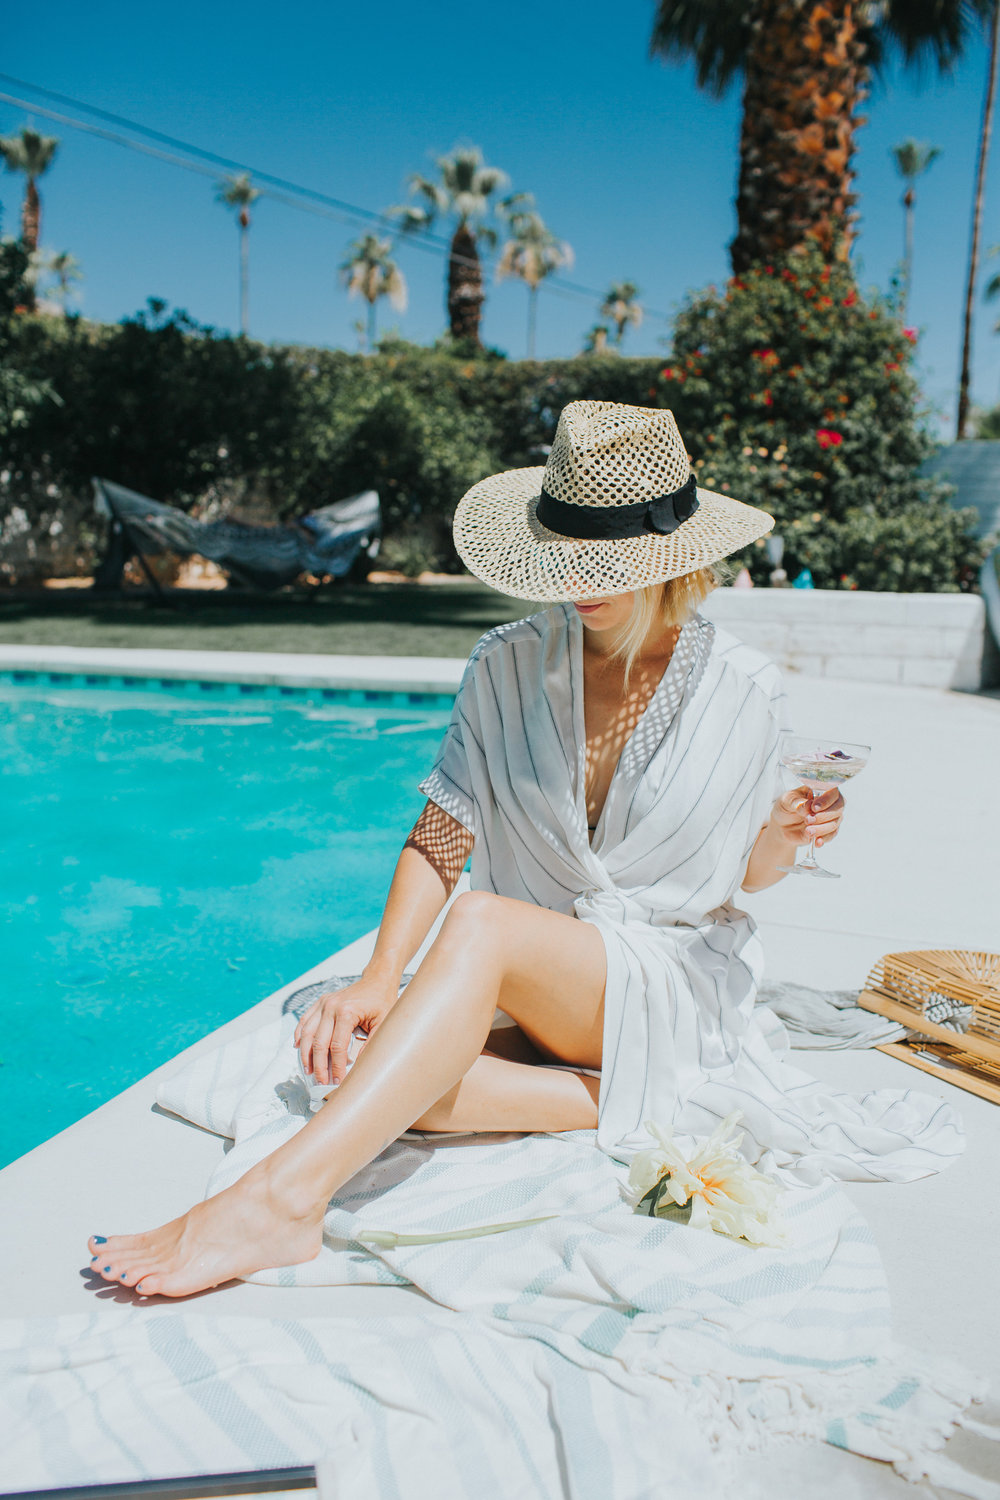 Summer pool party attire | A Fabulous Fete